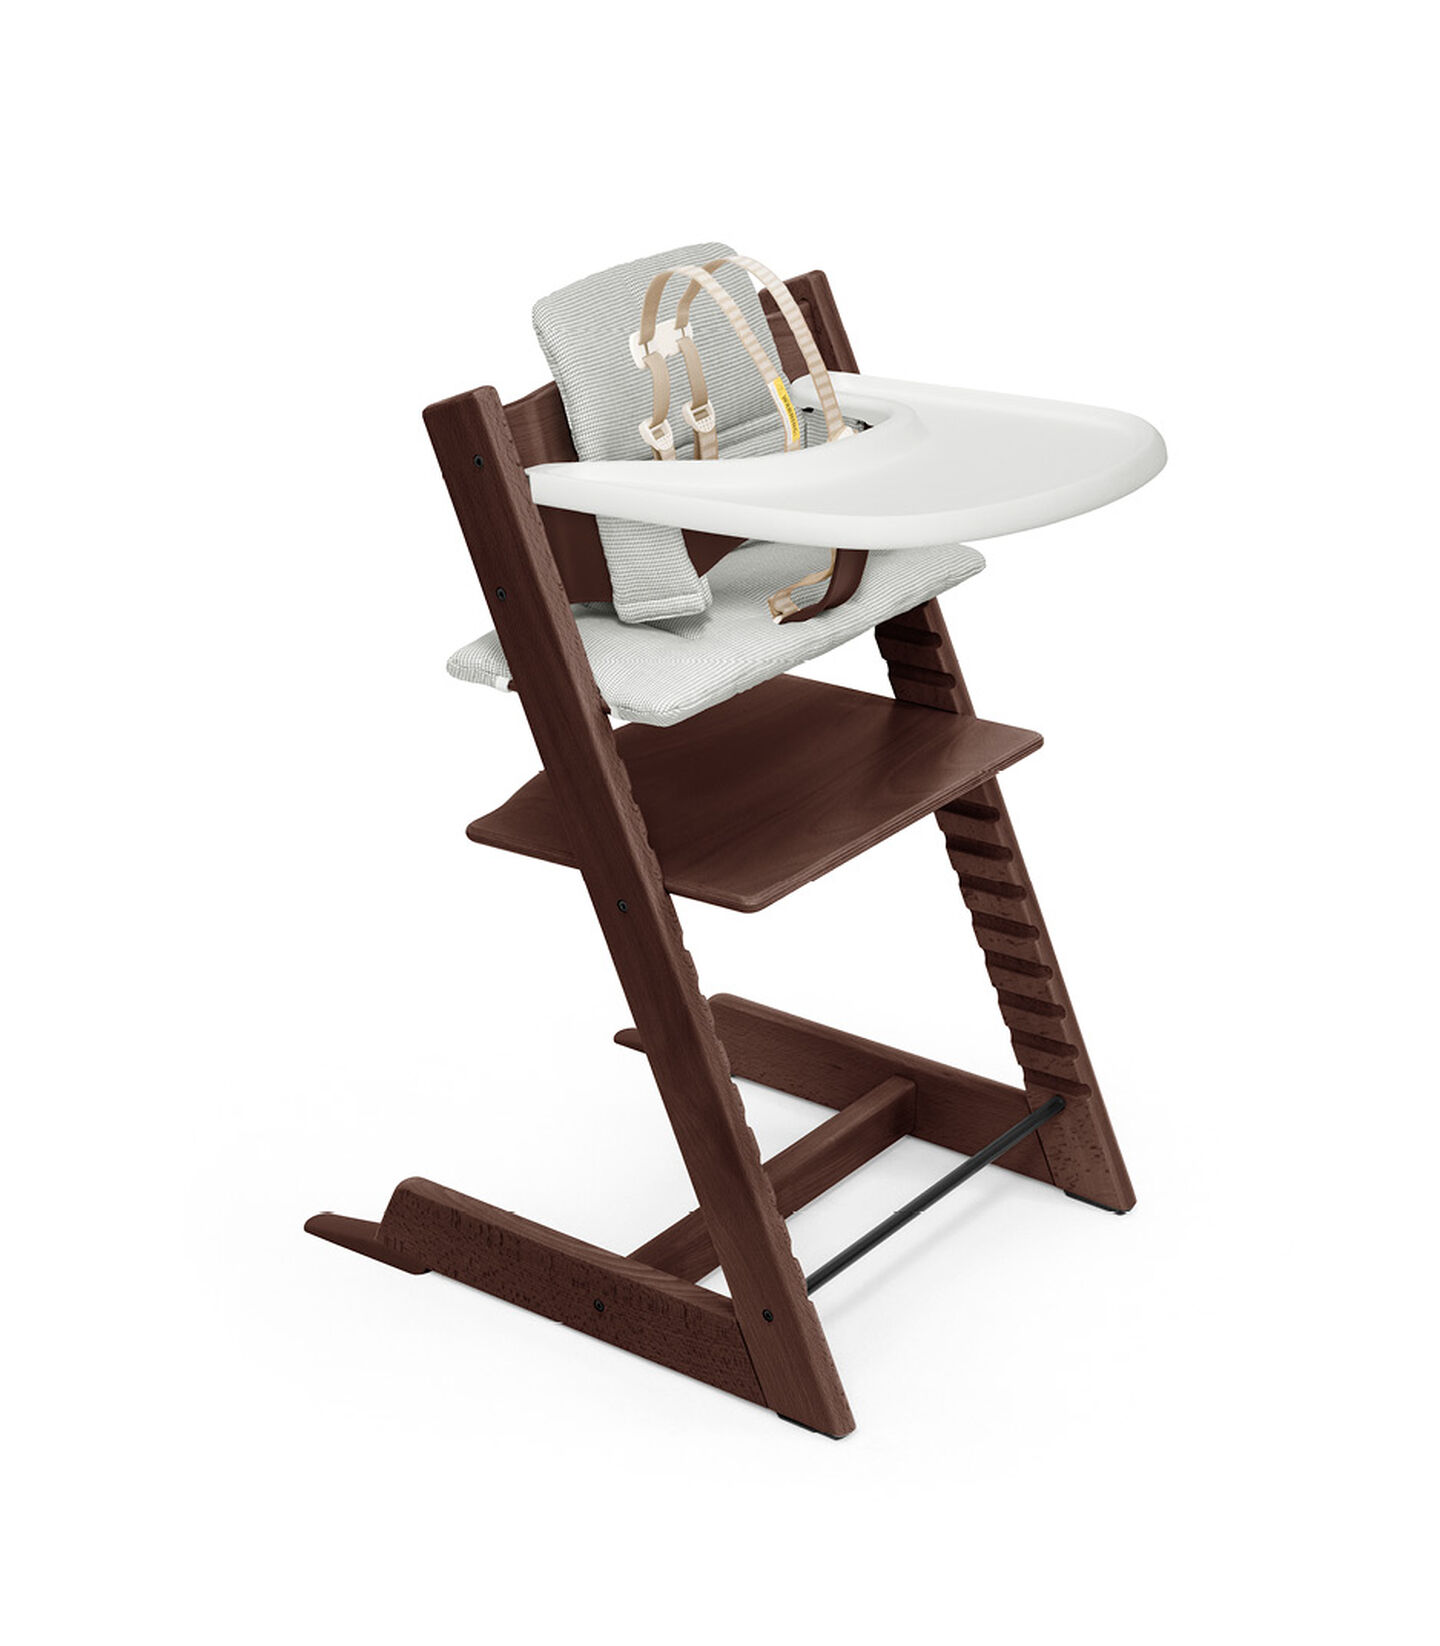 Tripp Trapp® HC Complete Walnut w Nordic Grey and Tray, Walnut Brown, Nordic Grey Cushion + Tray, mainview view 1